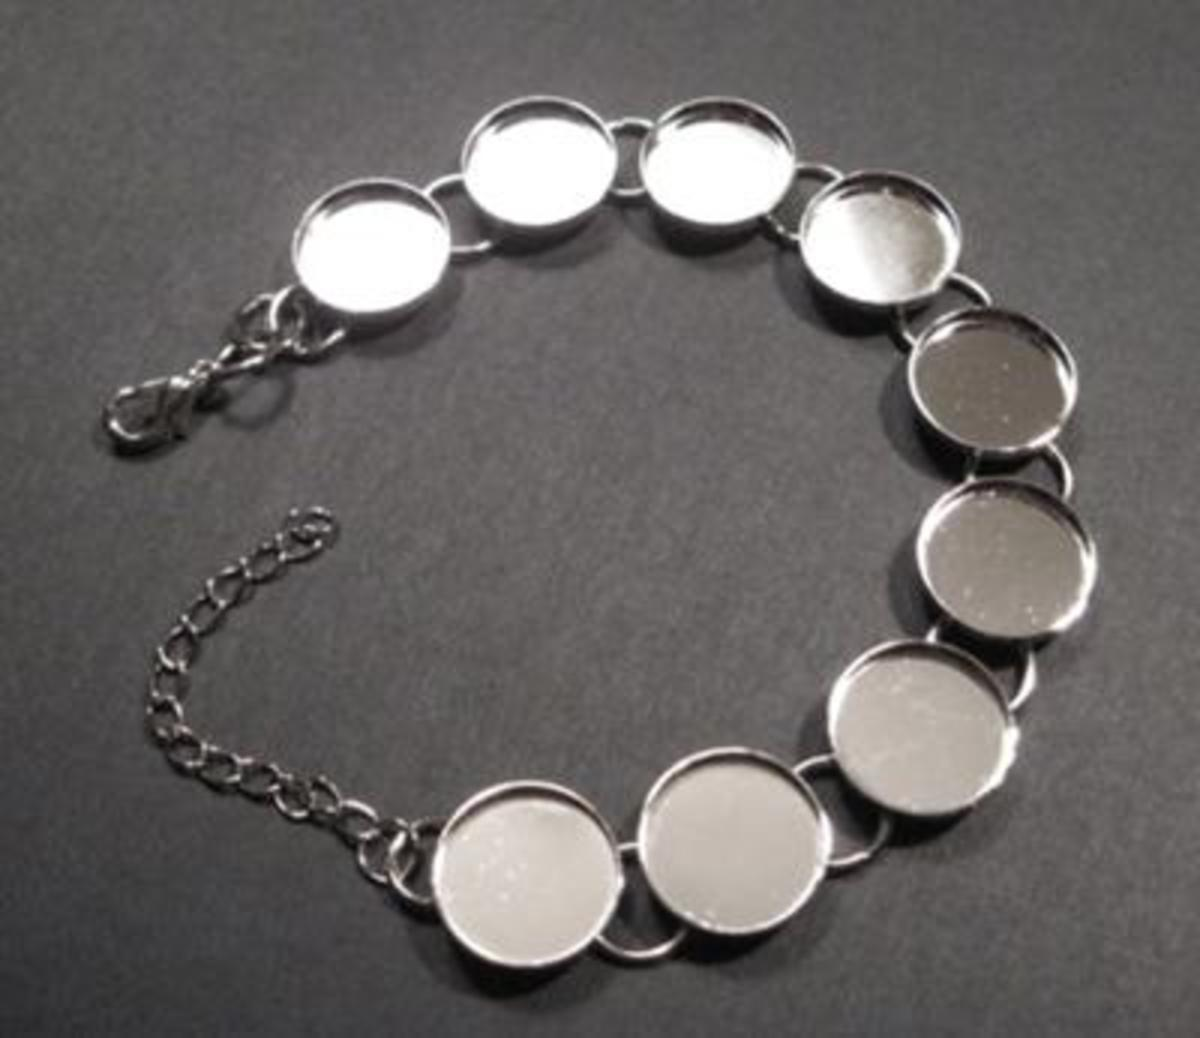 Jewelry molds are called Bezel Links. You will need to purchase these for each piece of jewelry you wish to make